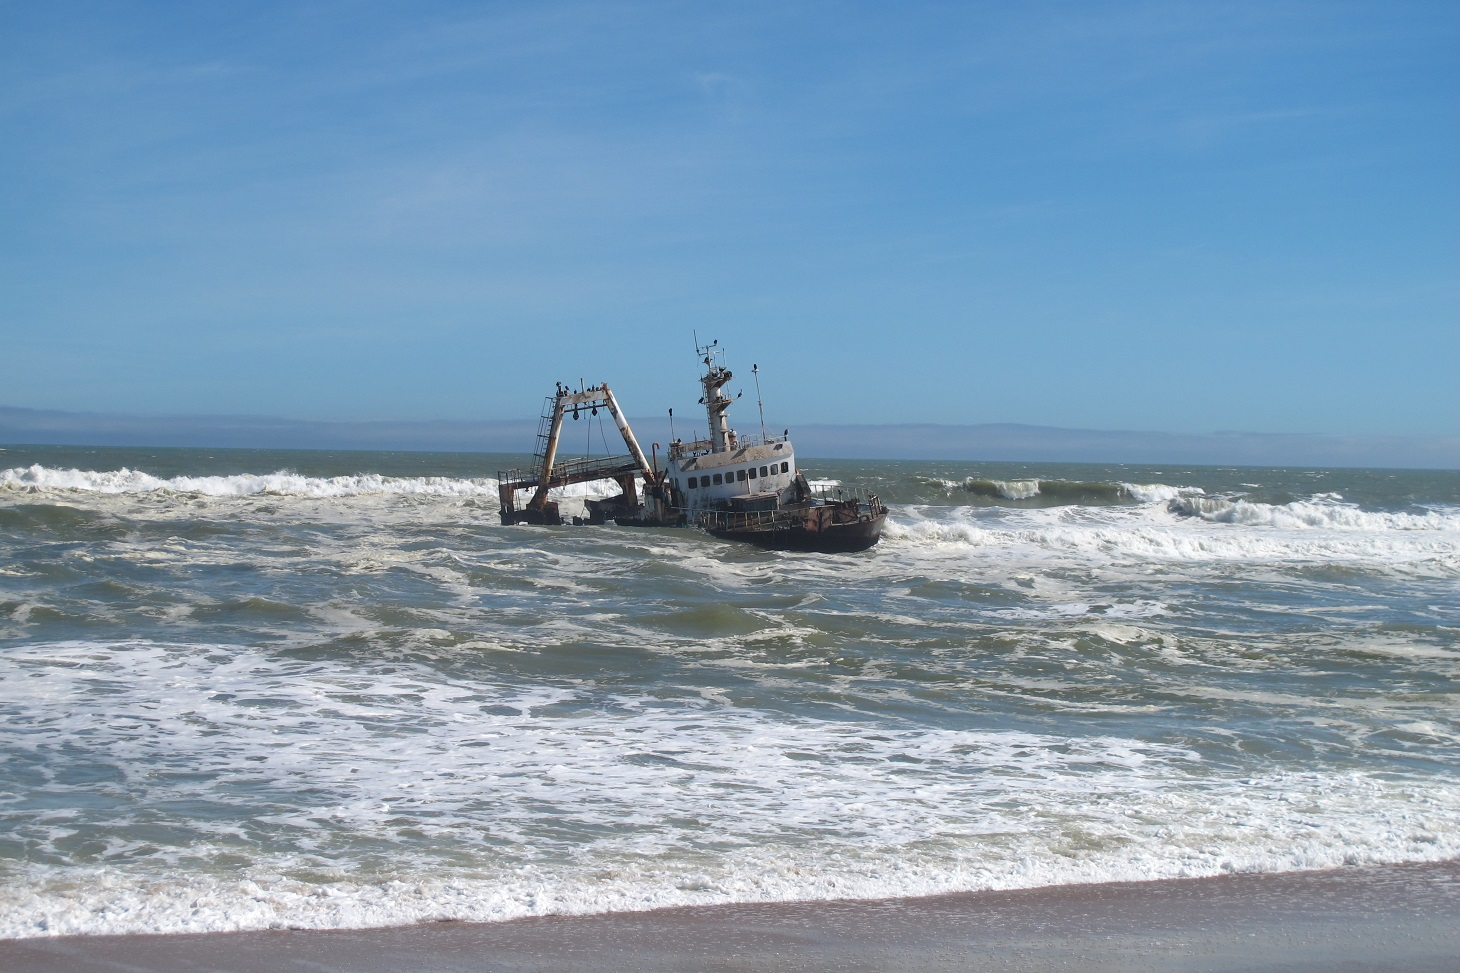 barco hundido cerca de Cape Cross